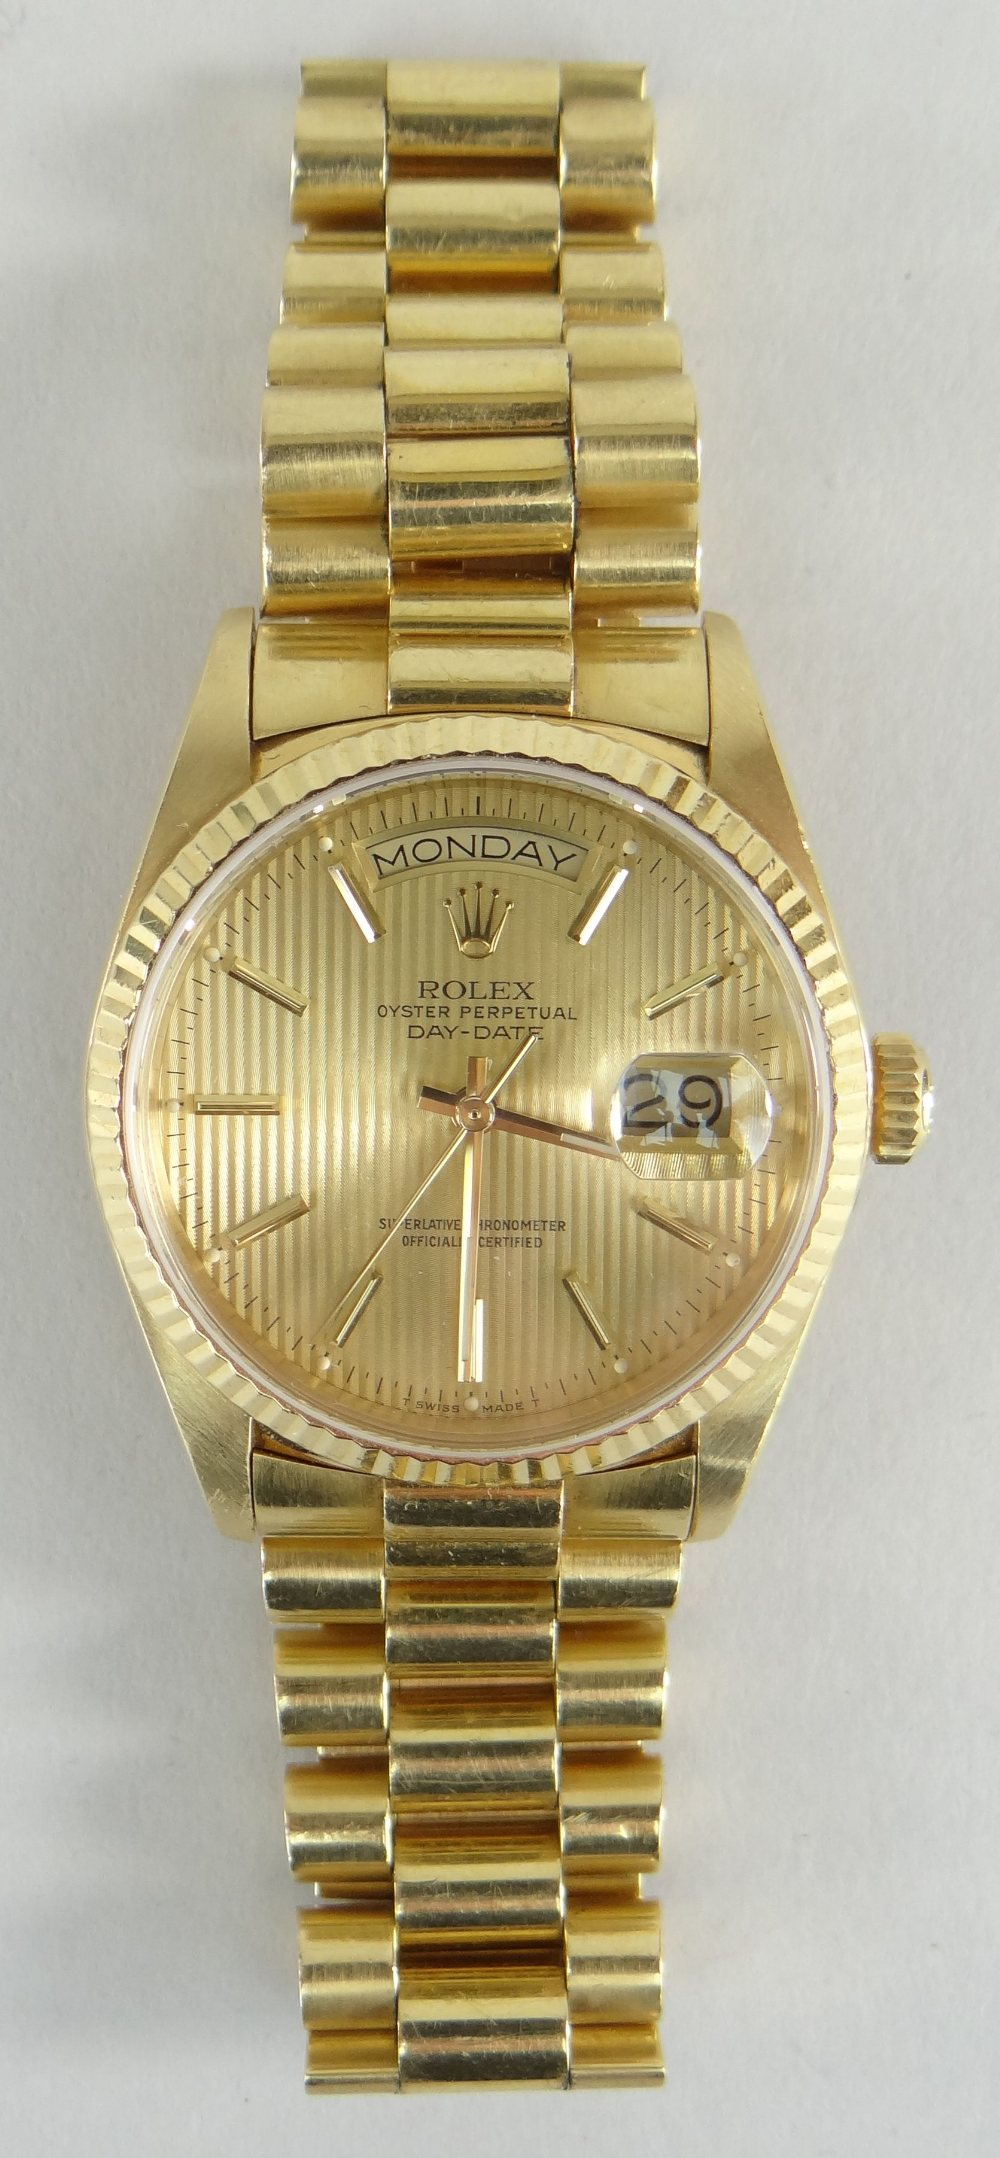 18CT GOLD ROLEX OYSTER PERPETUAL DAY DATE SUPERLATIVE CHRONOMETER WRISTWATCH, the circular dial - Image 2 of 4